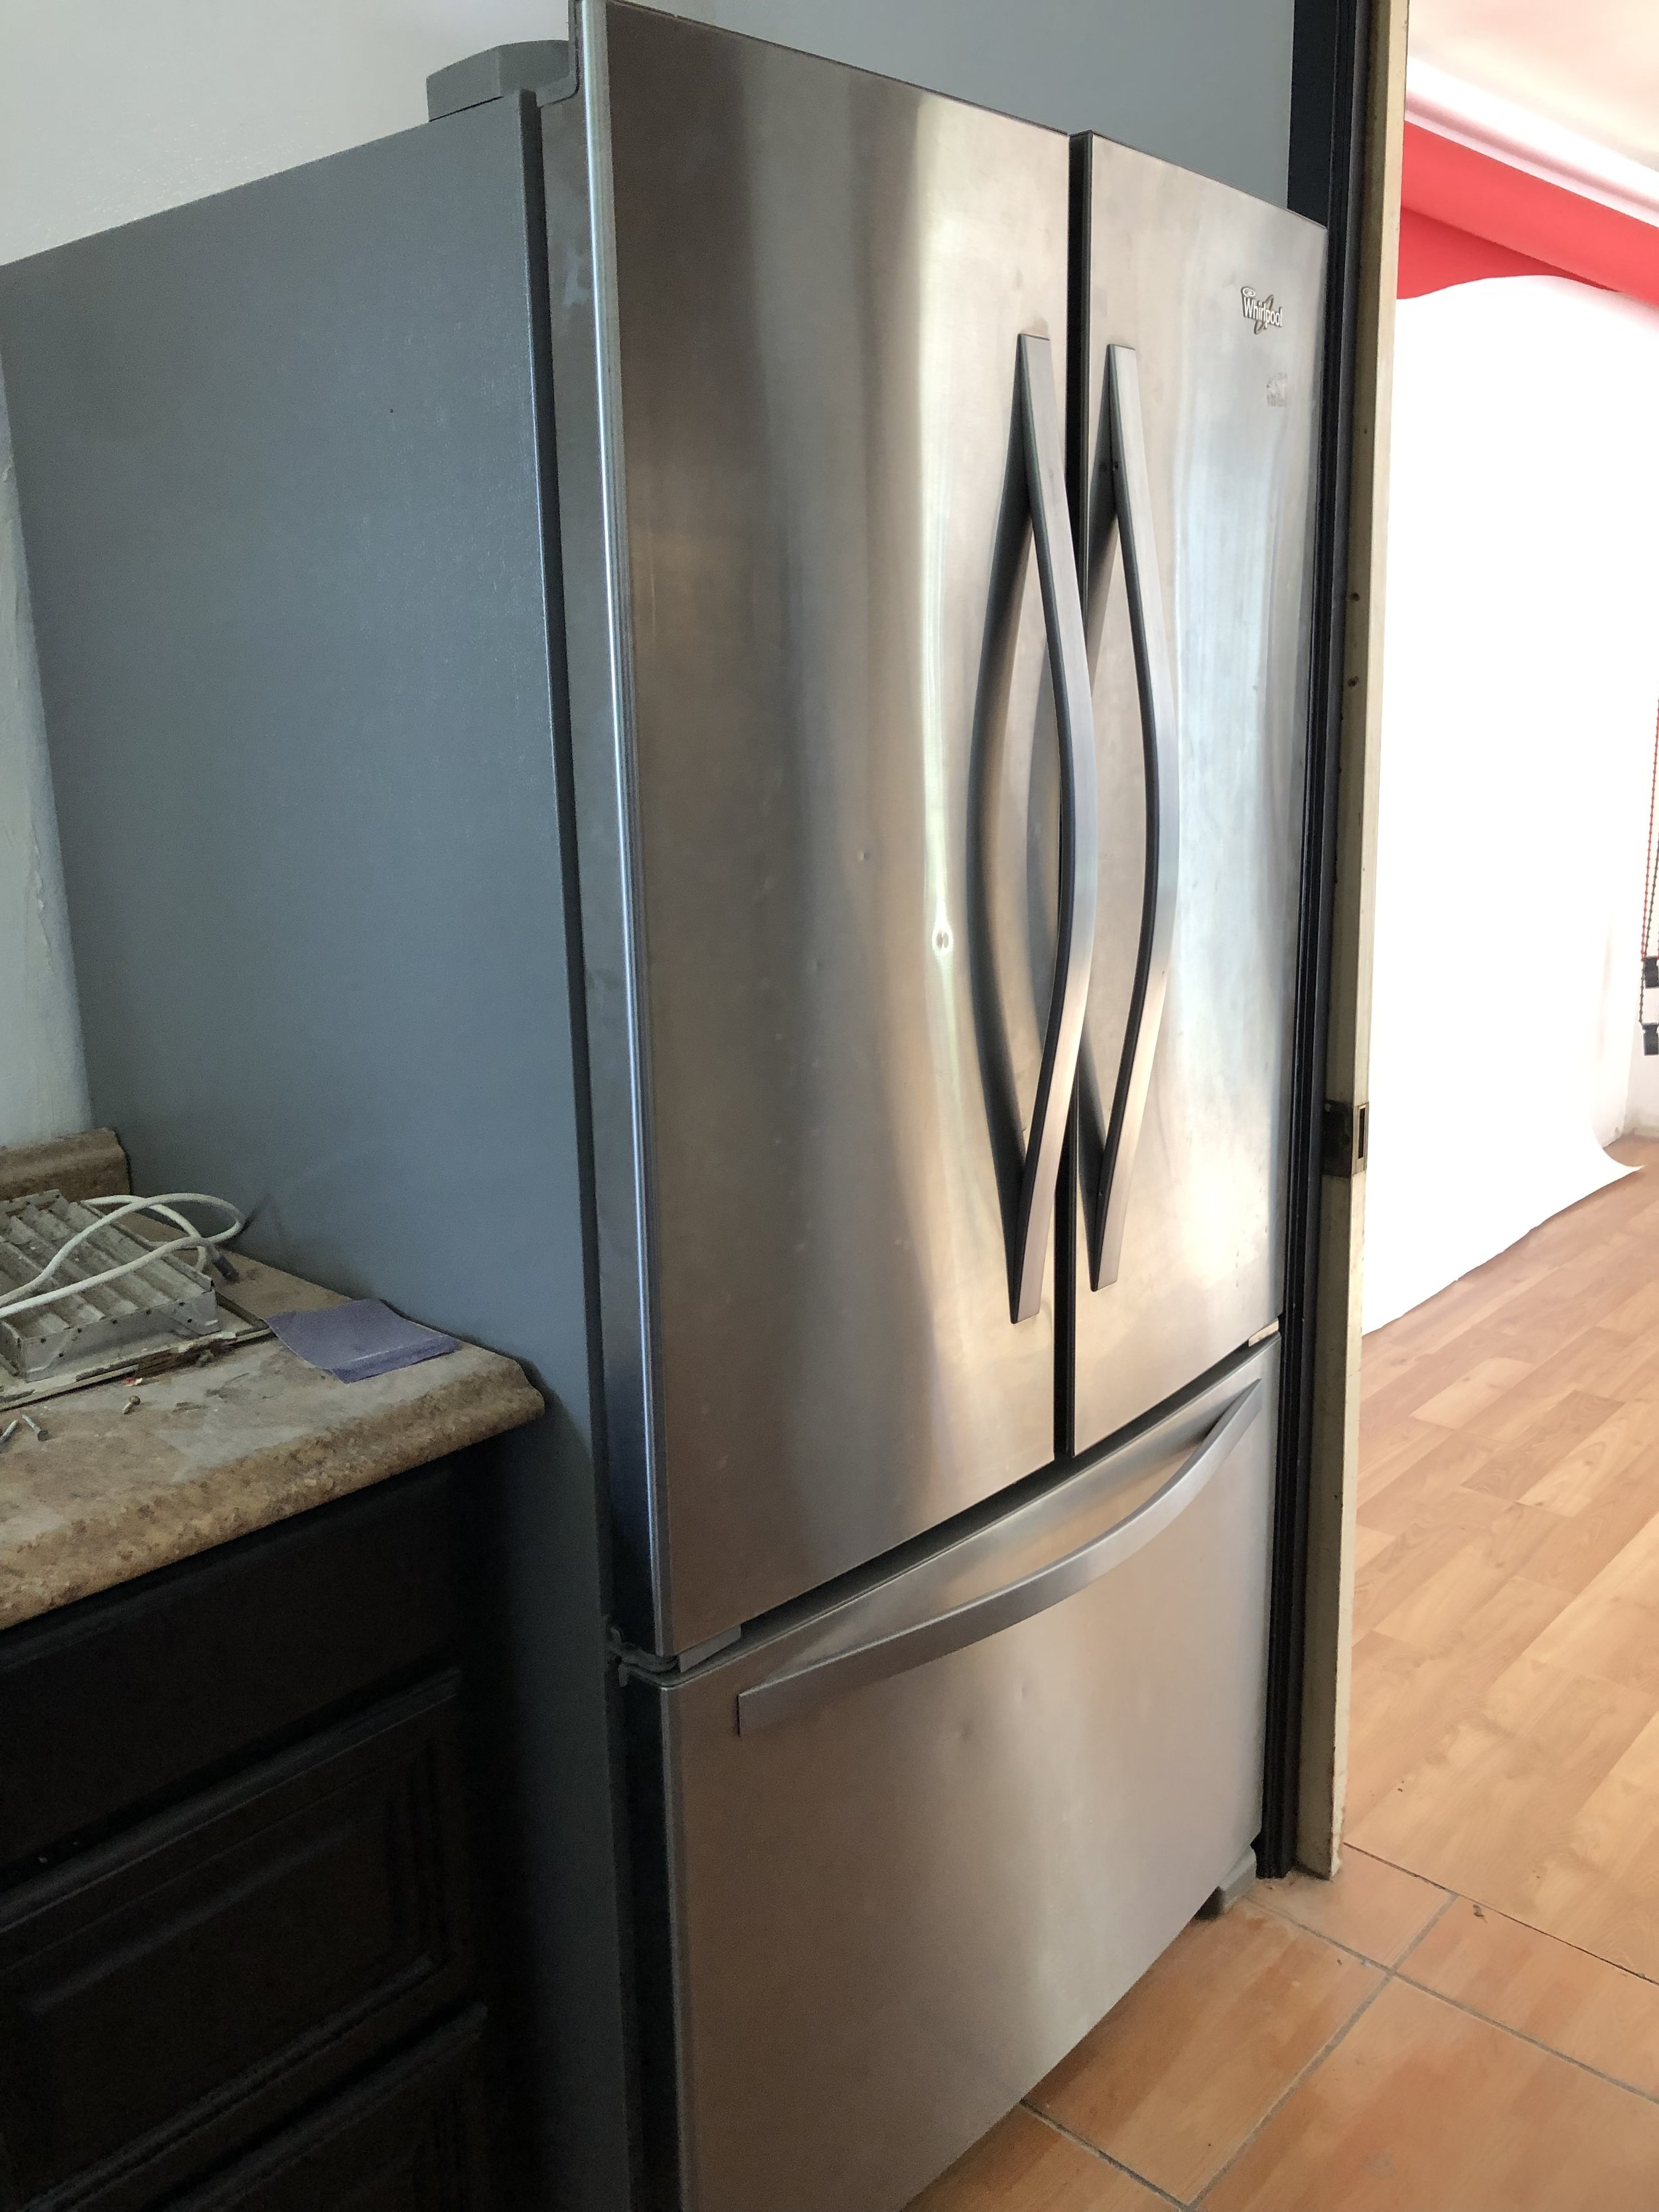 Finally got a fridge.